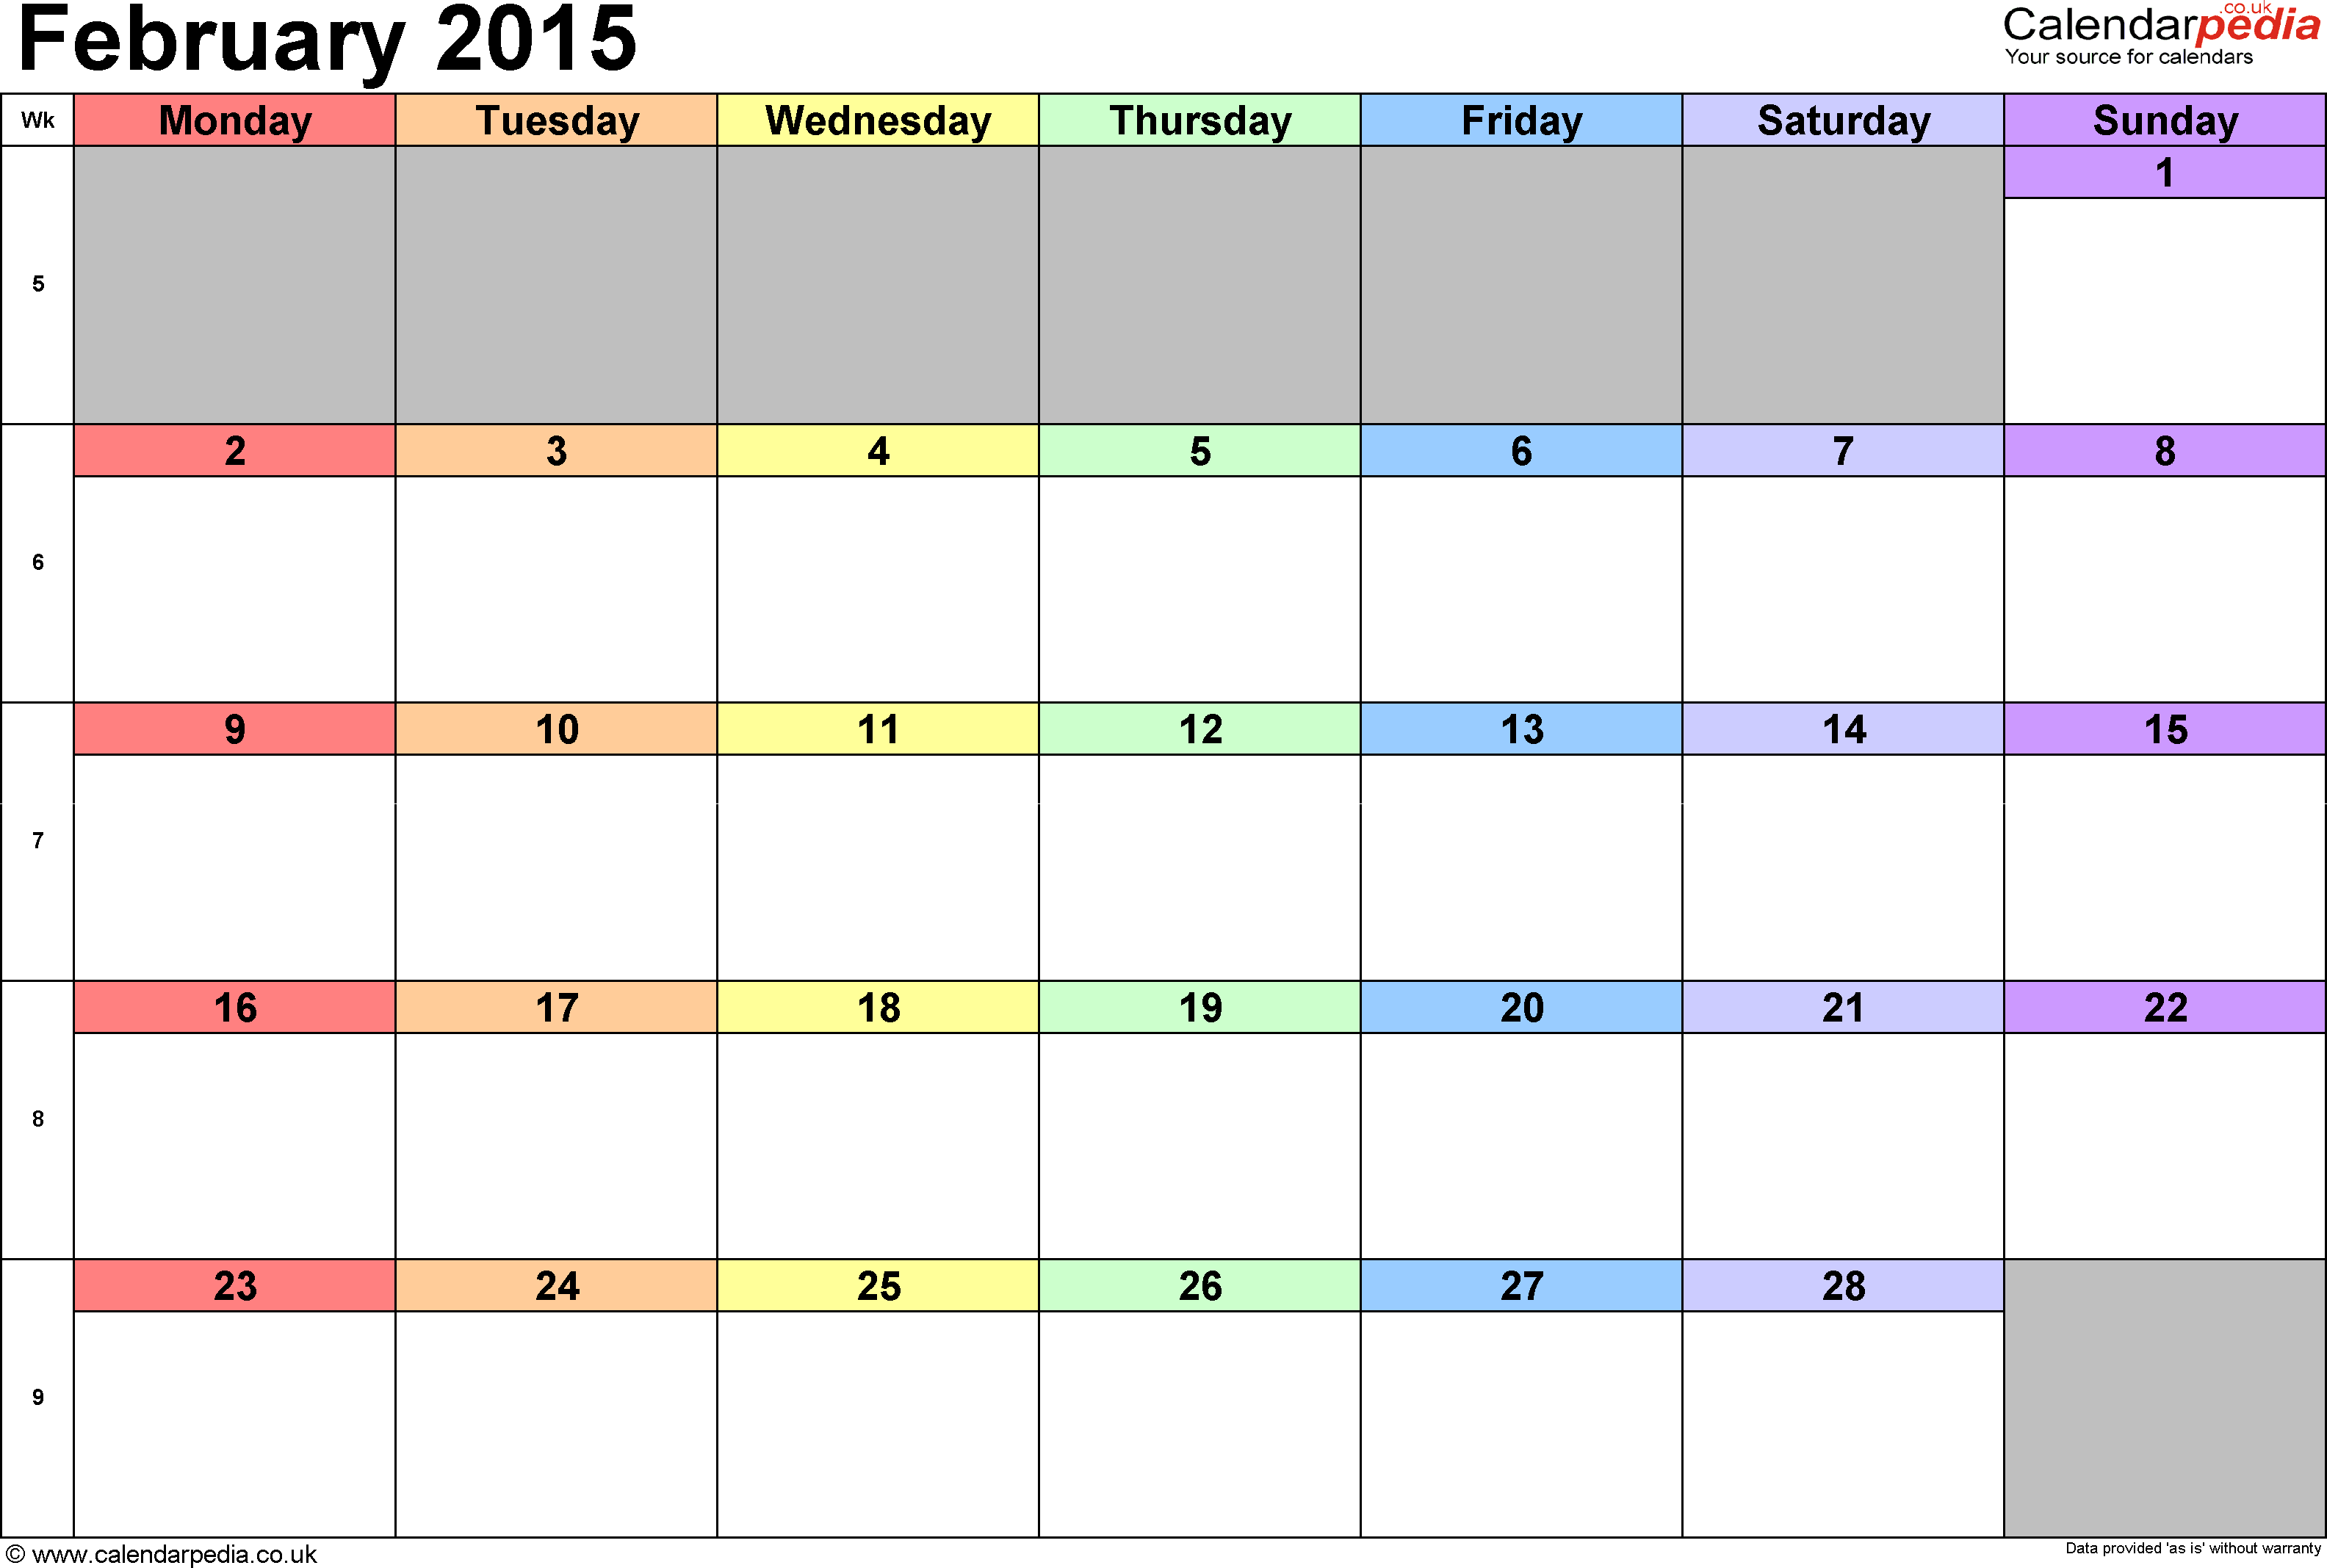 Calendar February 2015, landscape orientation, 1 page, with UK bank holidays and week numbers